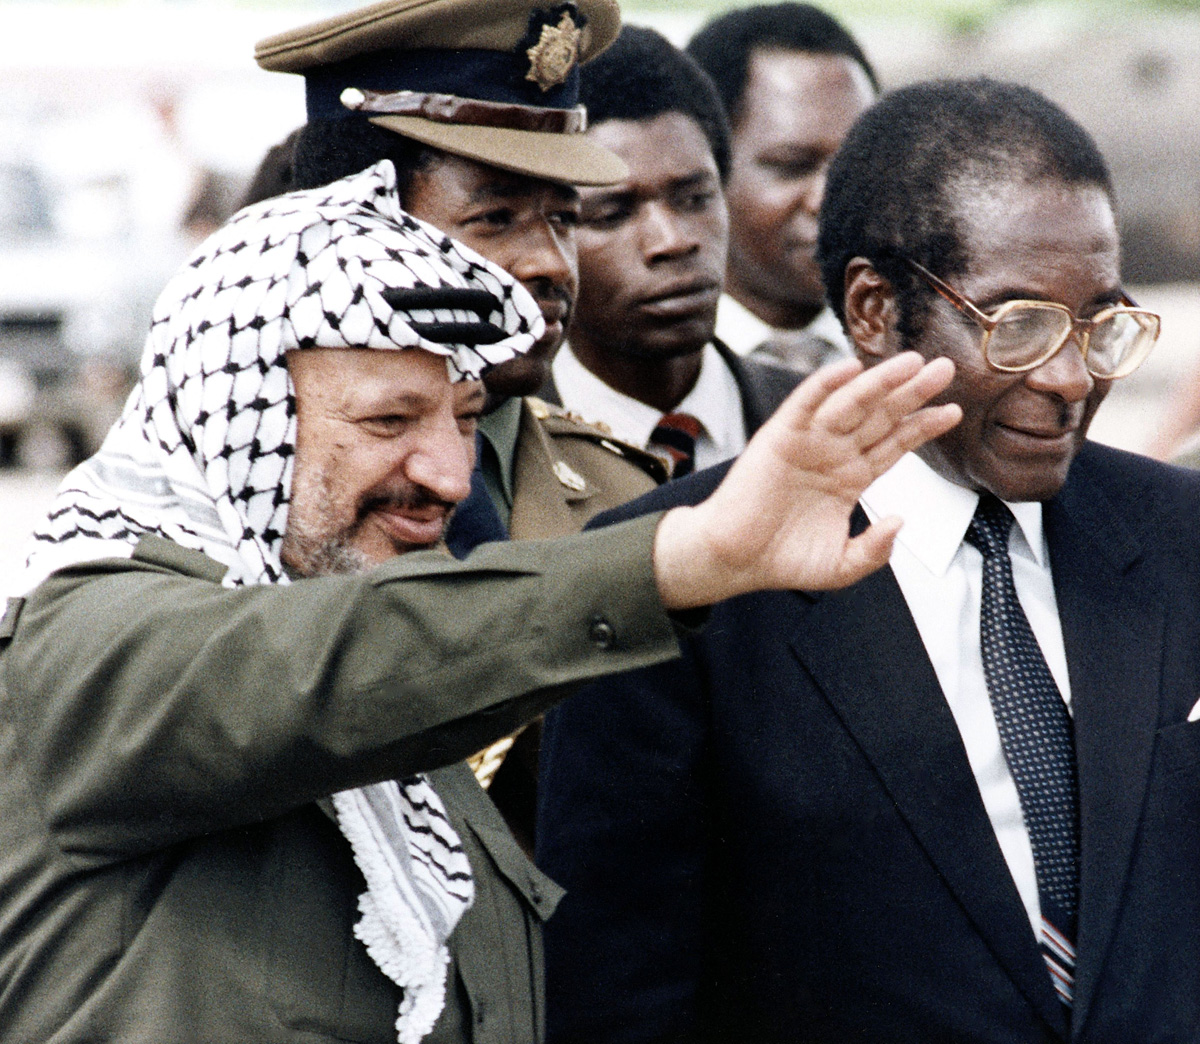 Mugabe also met the Chairman of the Palestine Liberation Organization [PLO] Yasser Arafat, who reportedly praised the leader for his solidarity towards the Palestinian people. [AP Photo]